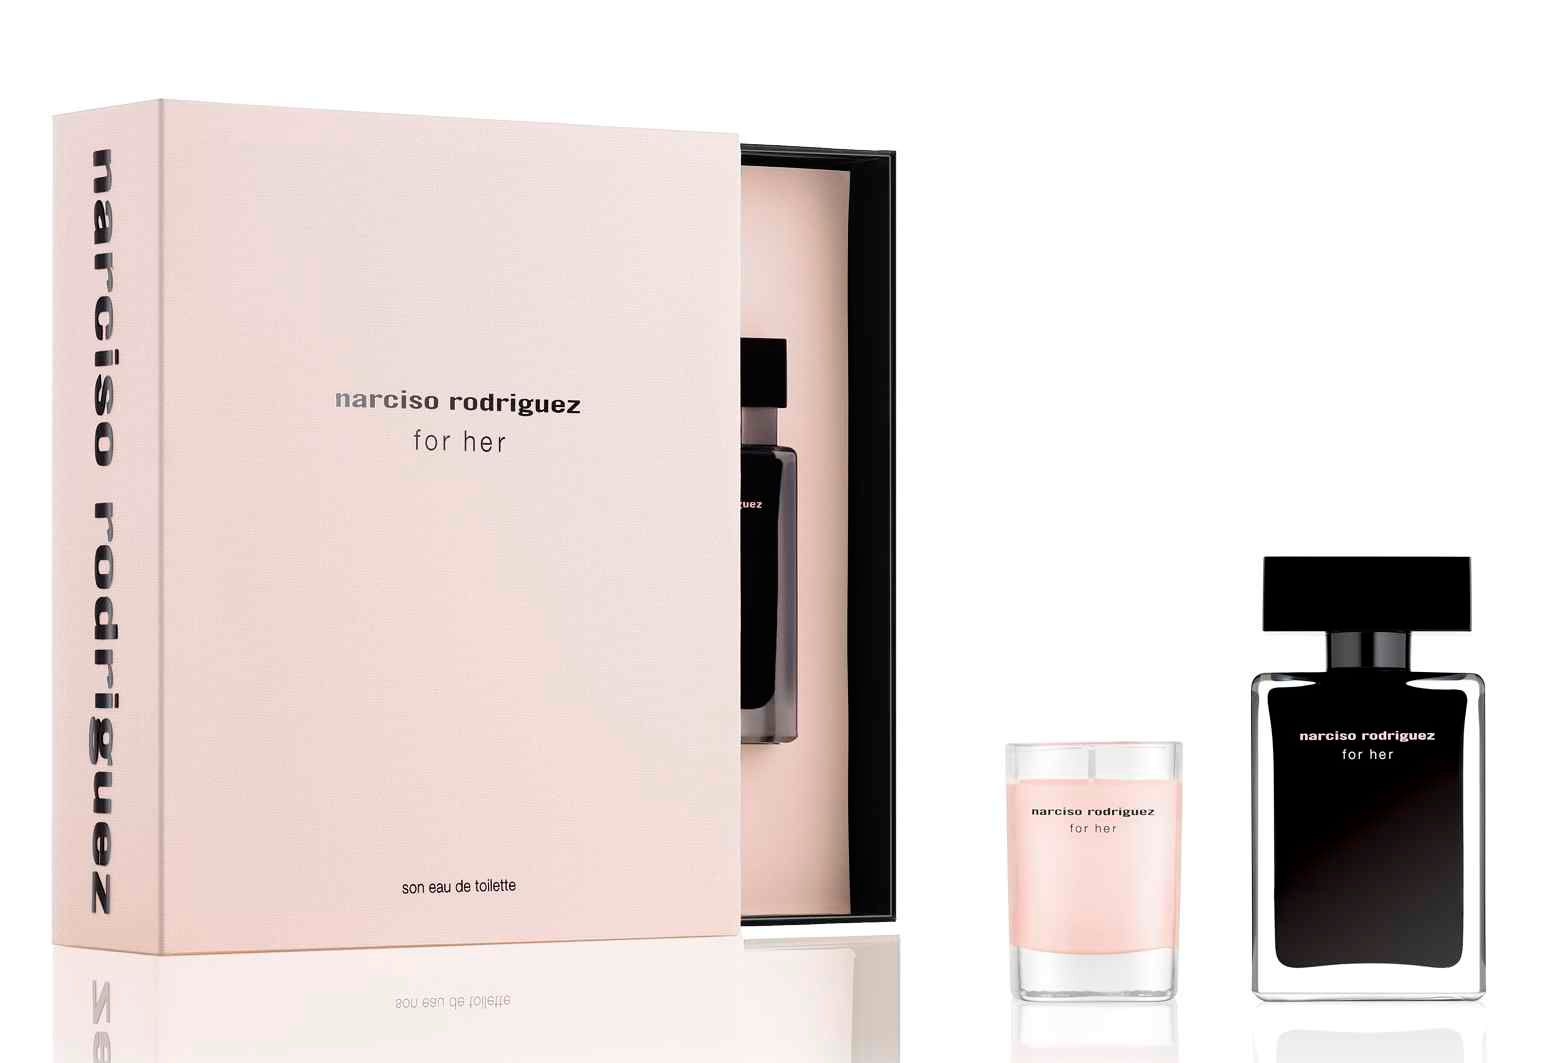 For Her eau de toilette gift set